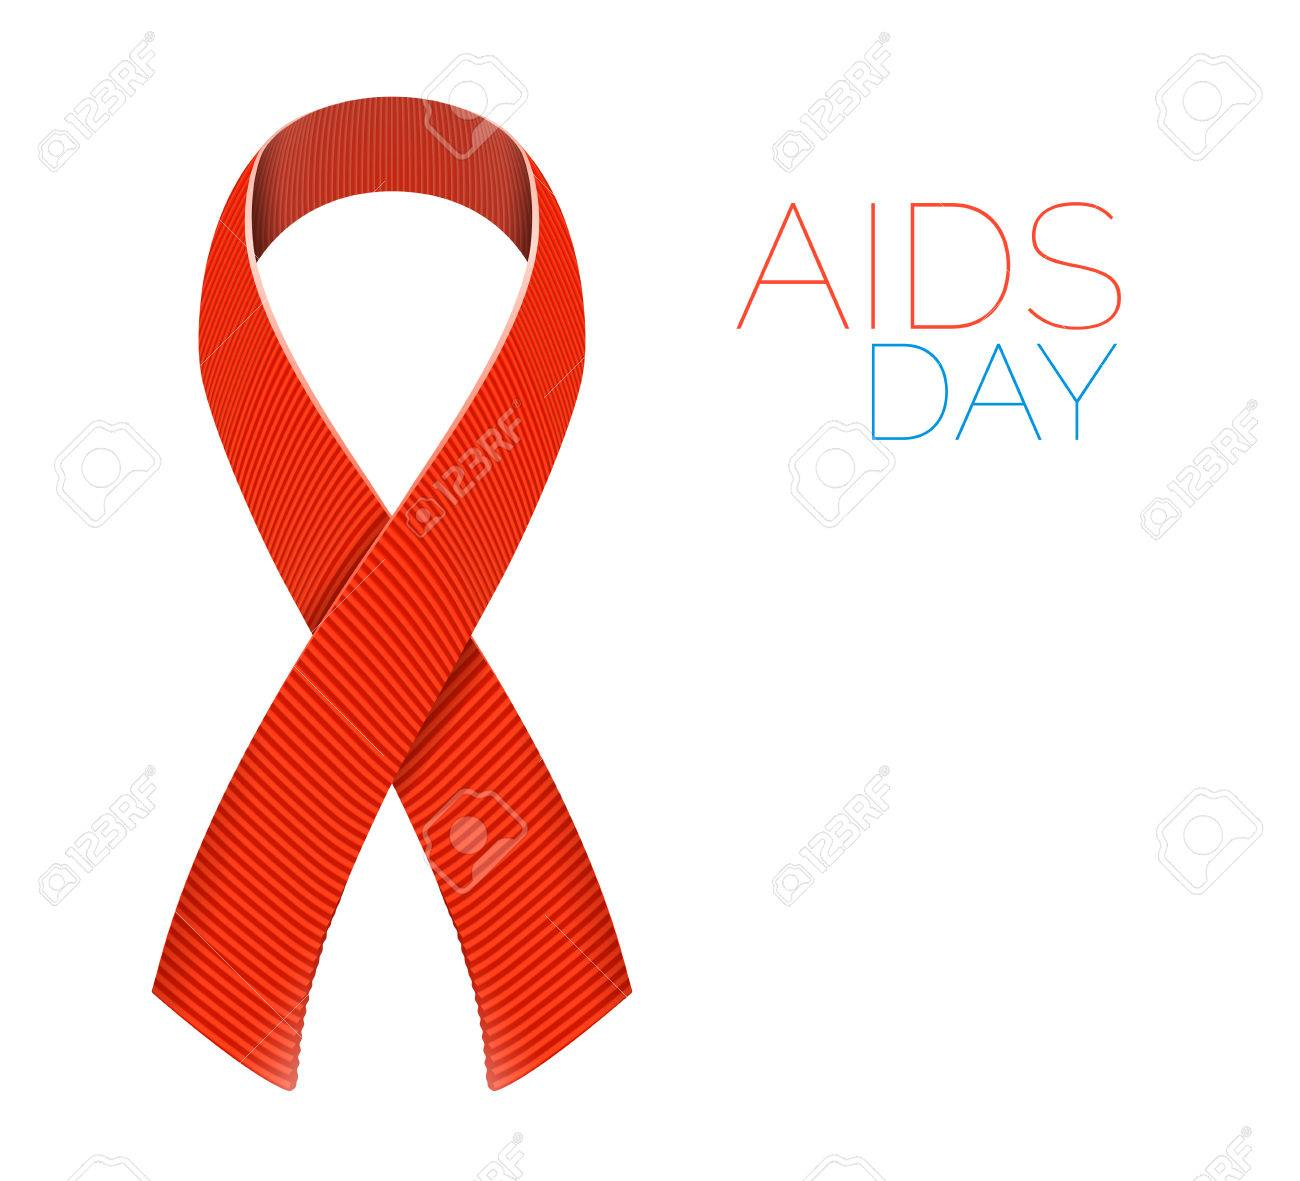 Realistic aids awareness red satin ribbon isolated on white realistic aids awareness red satin ribbon isolated on white background illustration of symbol for solidarity buycottarizona Image collections